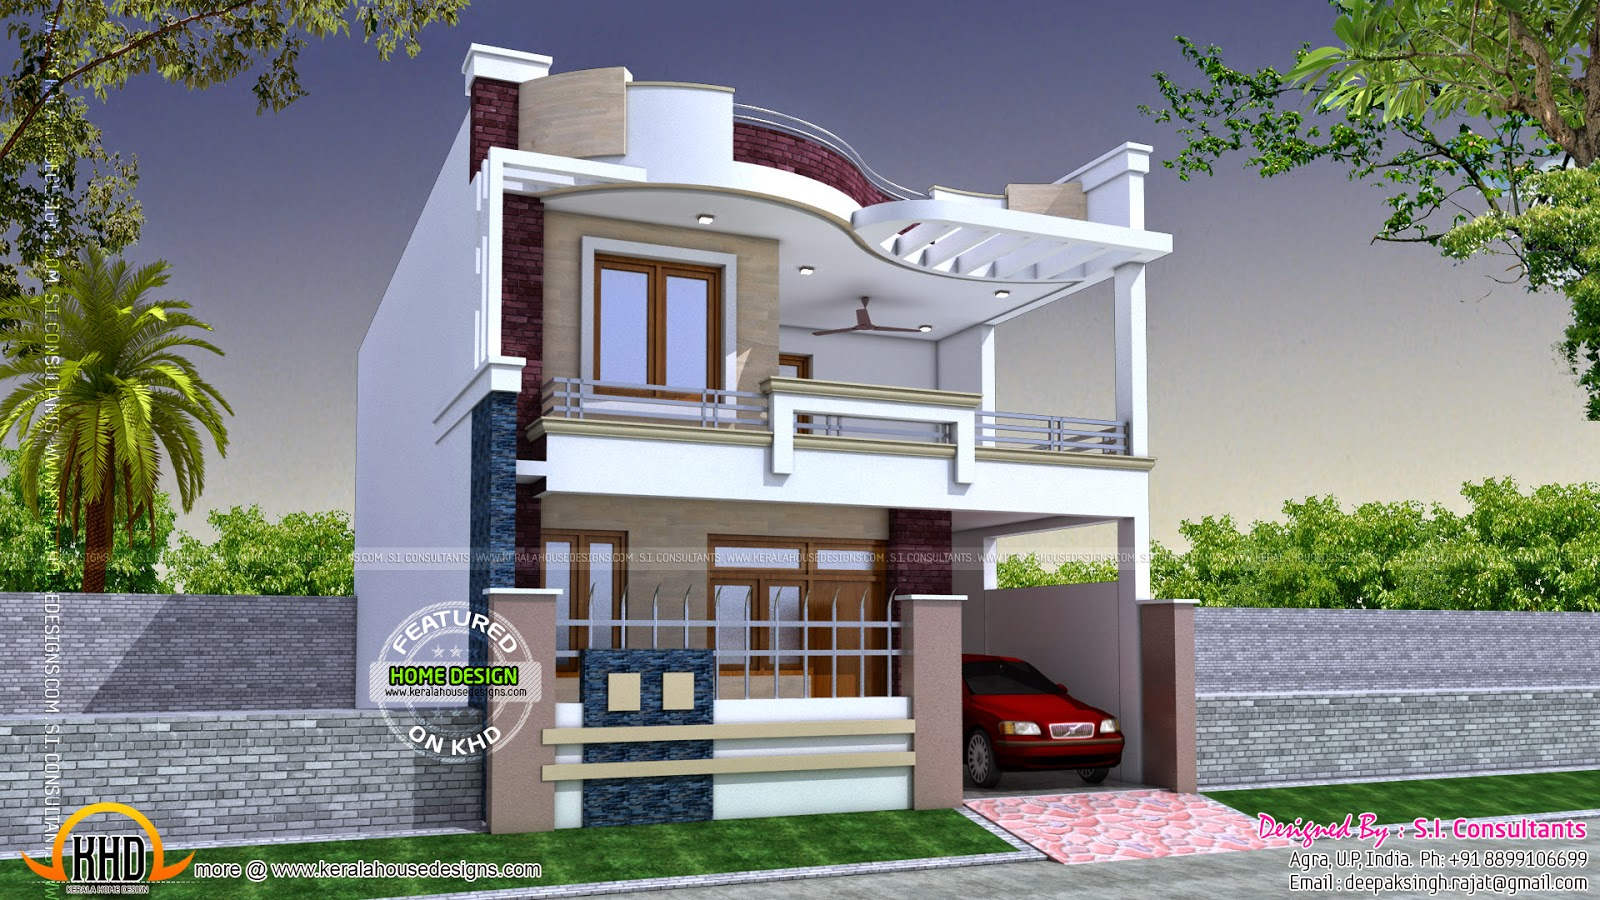 Modern indian home design kerala home design and floor plans for Interior house plans with photos